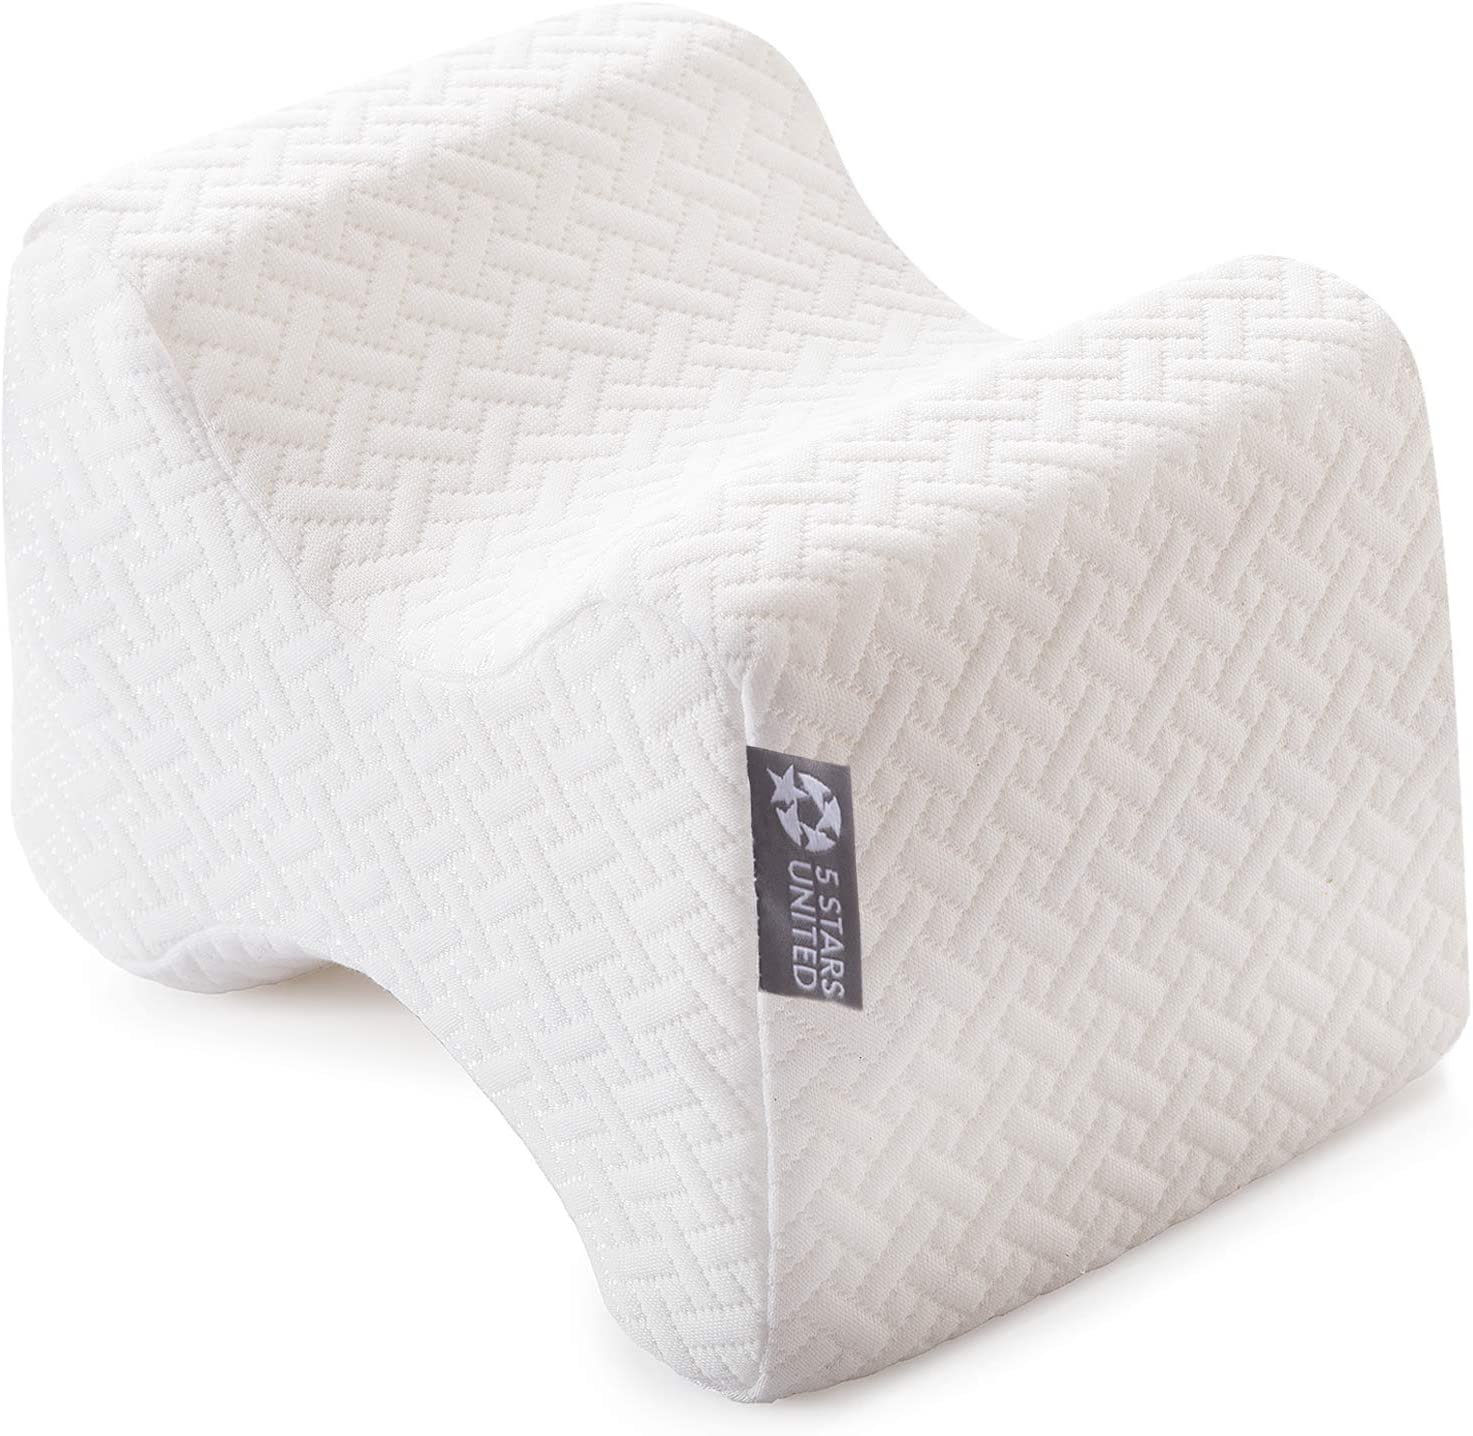 Knee Pillow Side Sleepers Alignment